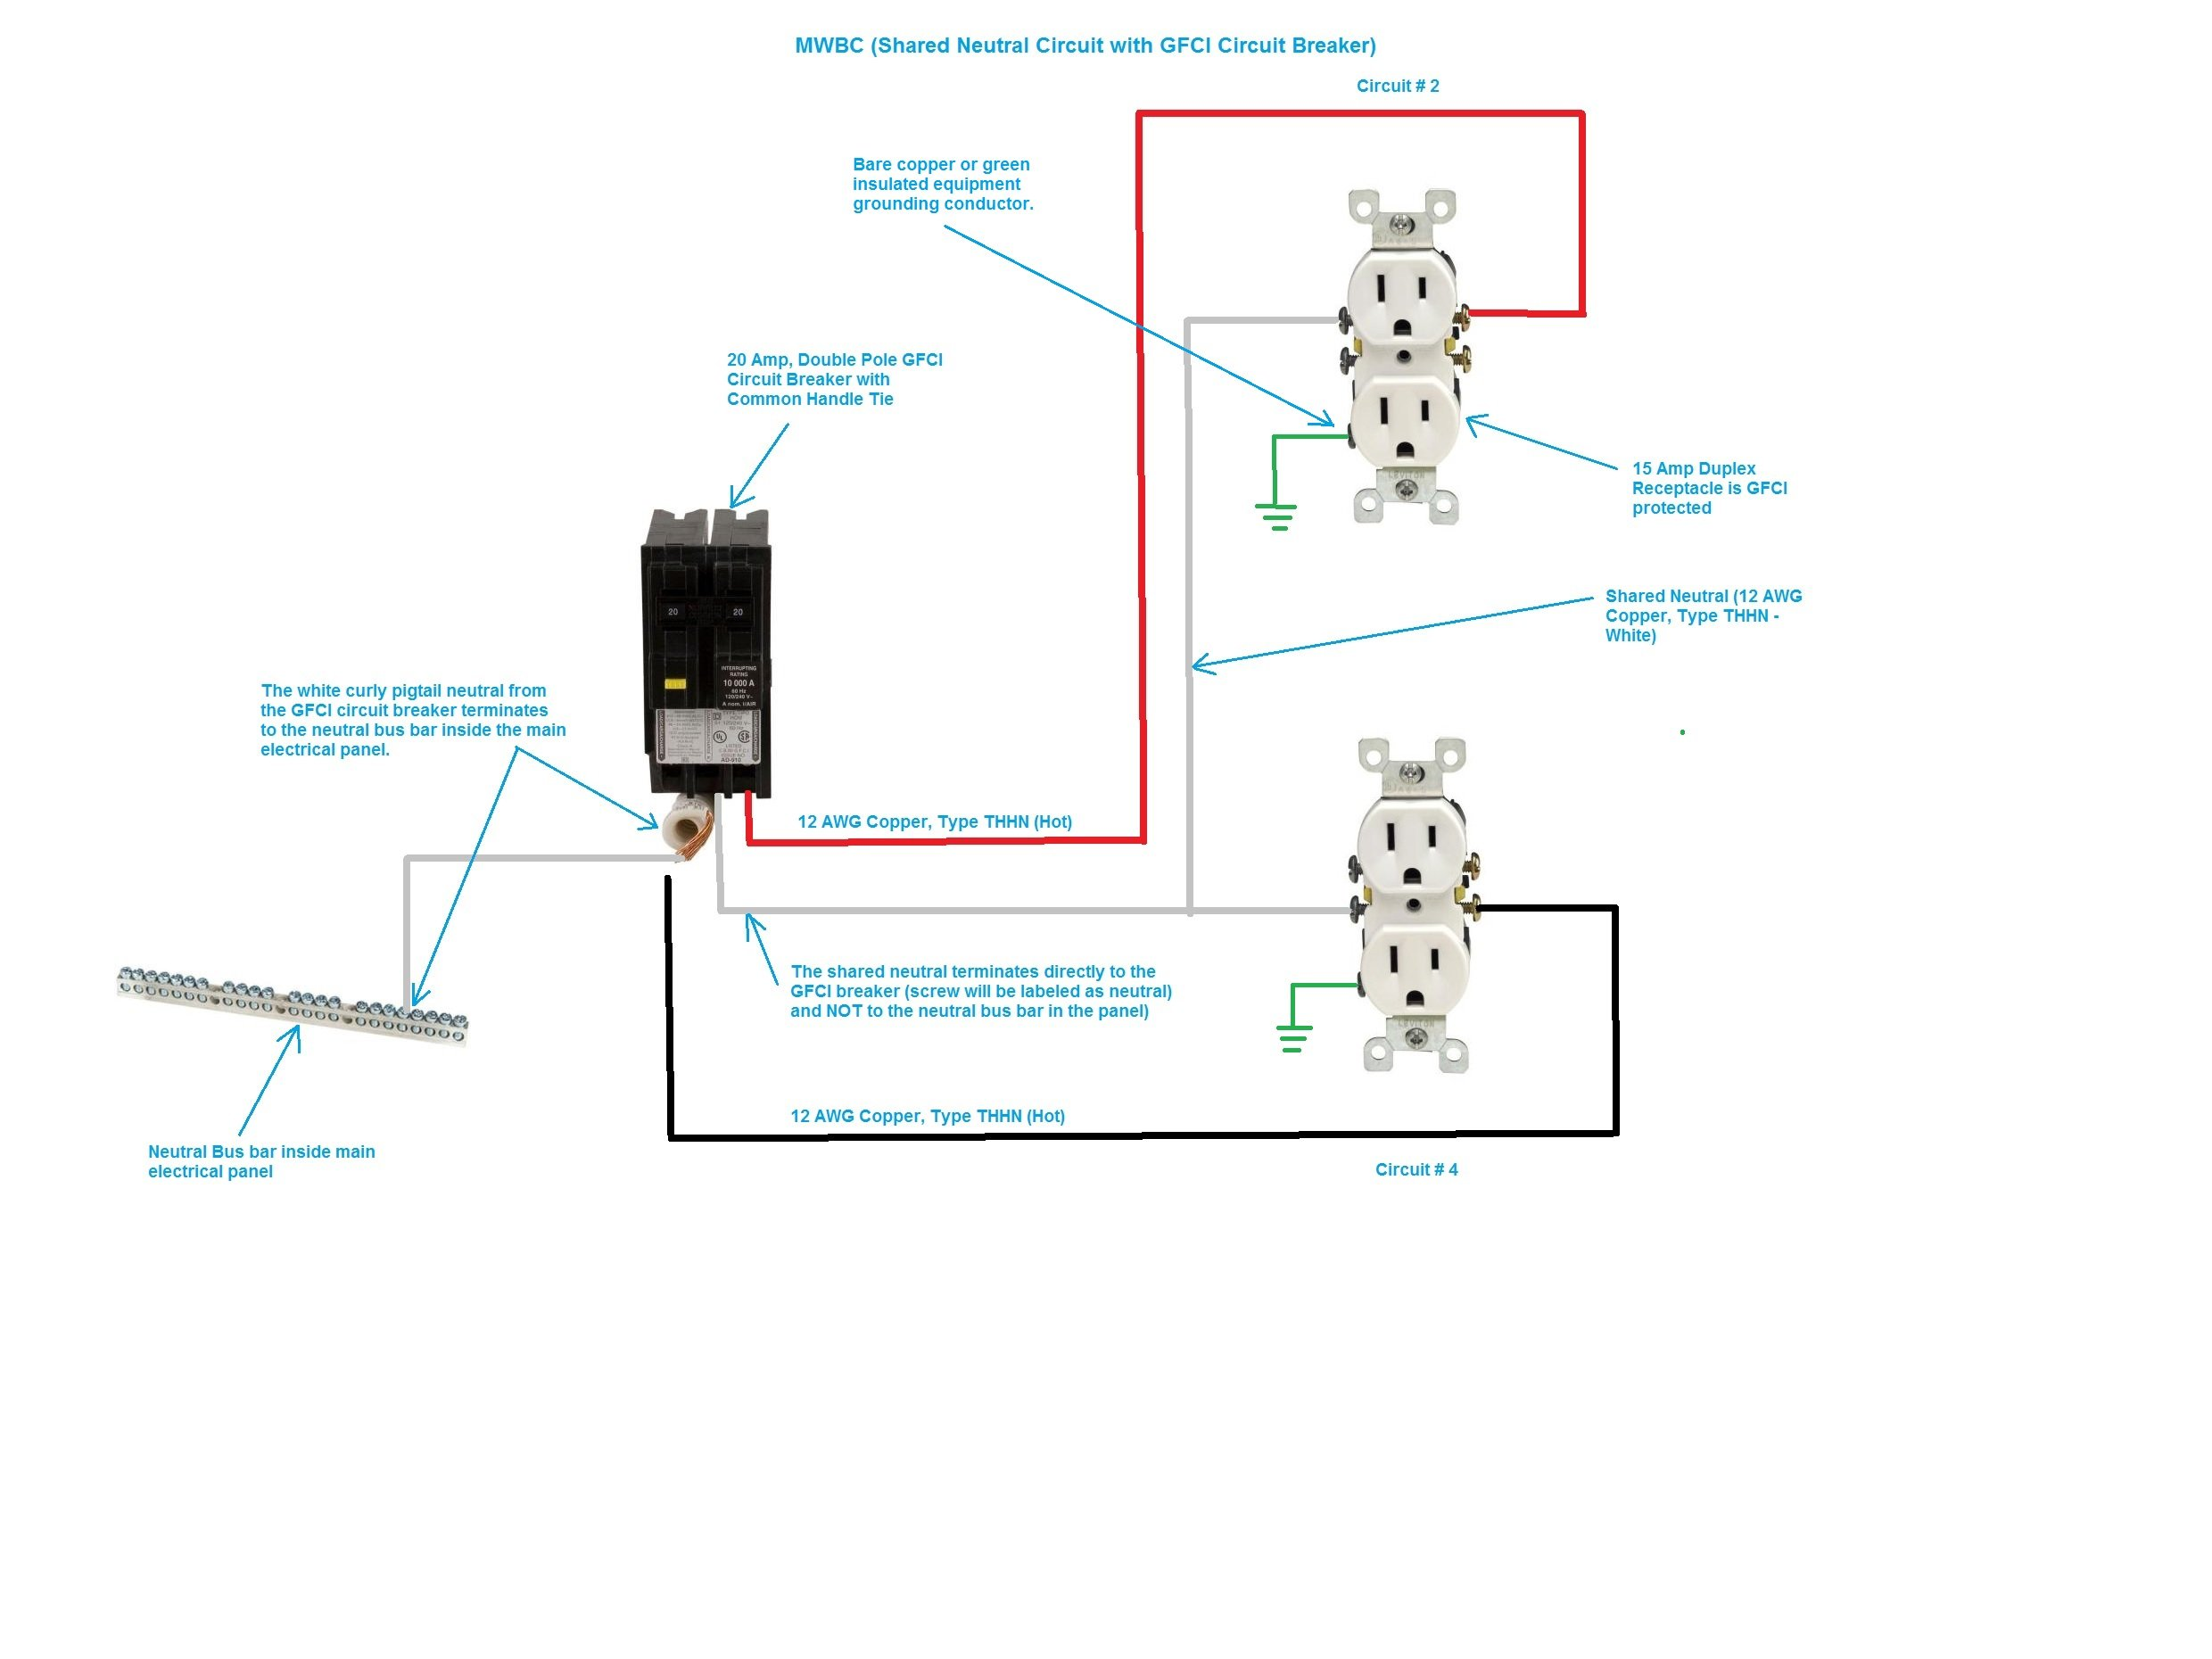 2 Phase Gfci Wiring Diagram | Index listing of wiring diagrams on gfci with light switch wiring, gfci with wires, gfci switch wiring after, switch controlled gfci outlet diagram, switch and gfi outlet diagram, garbage disposal with switch wiring diagram, gfci switch outlet combo, ground fault outlet wiring diagram, gfci with switch installation,